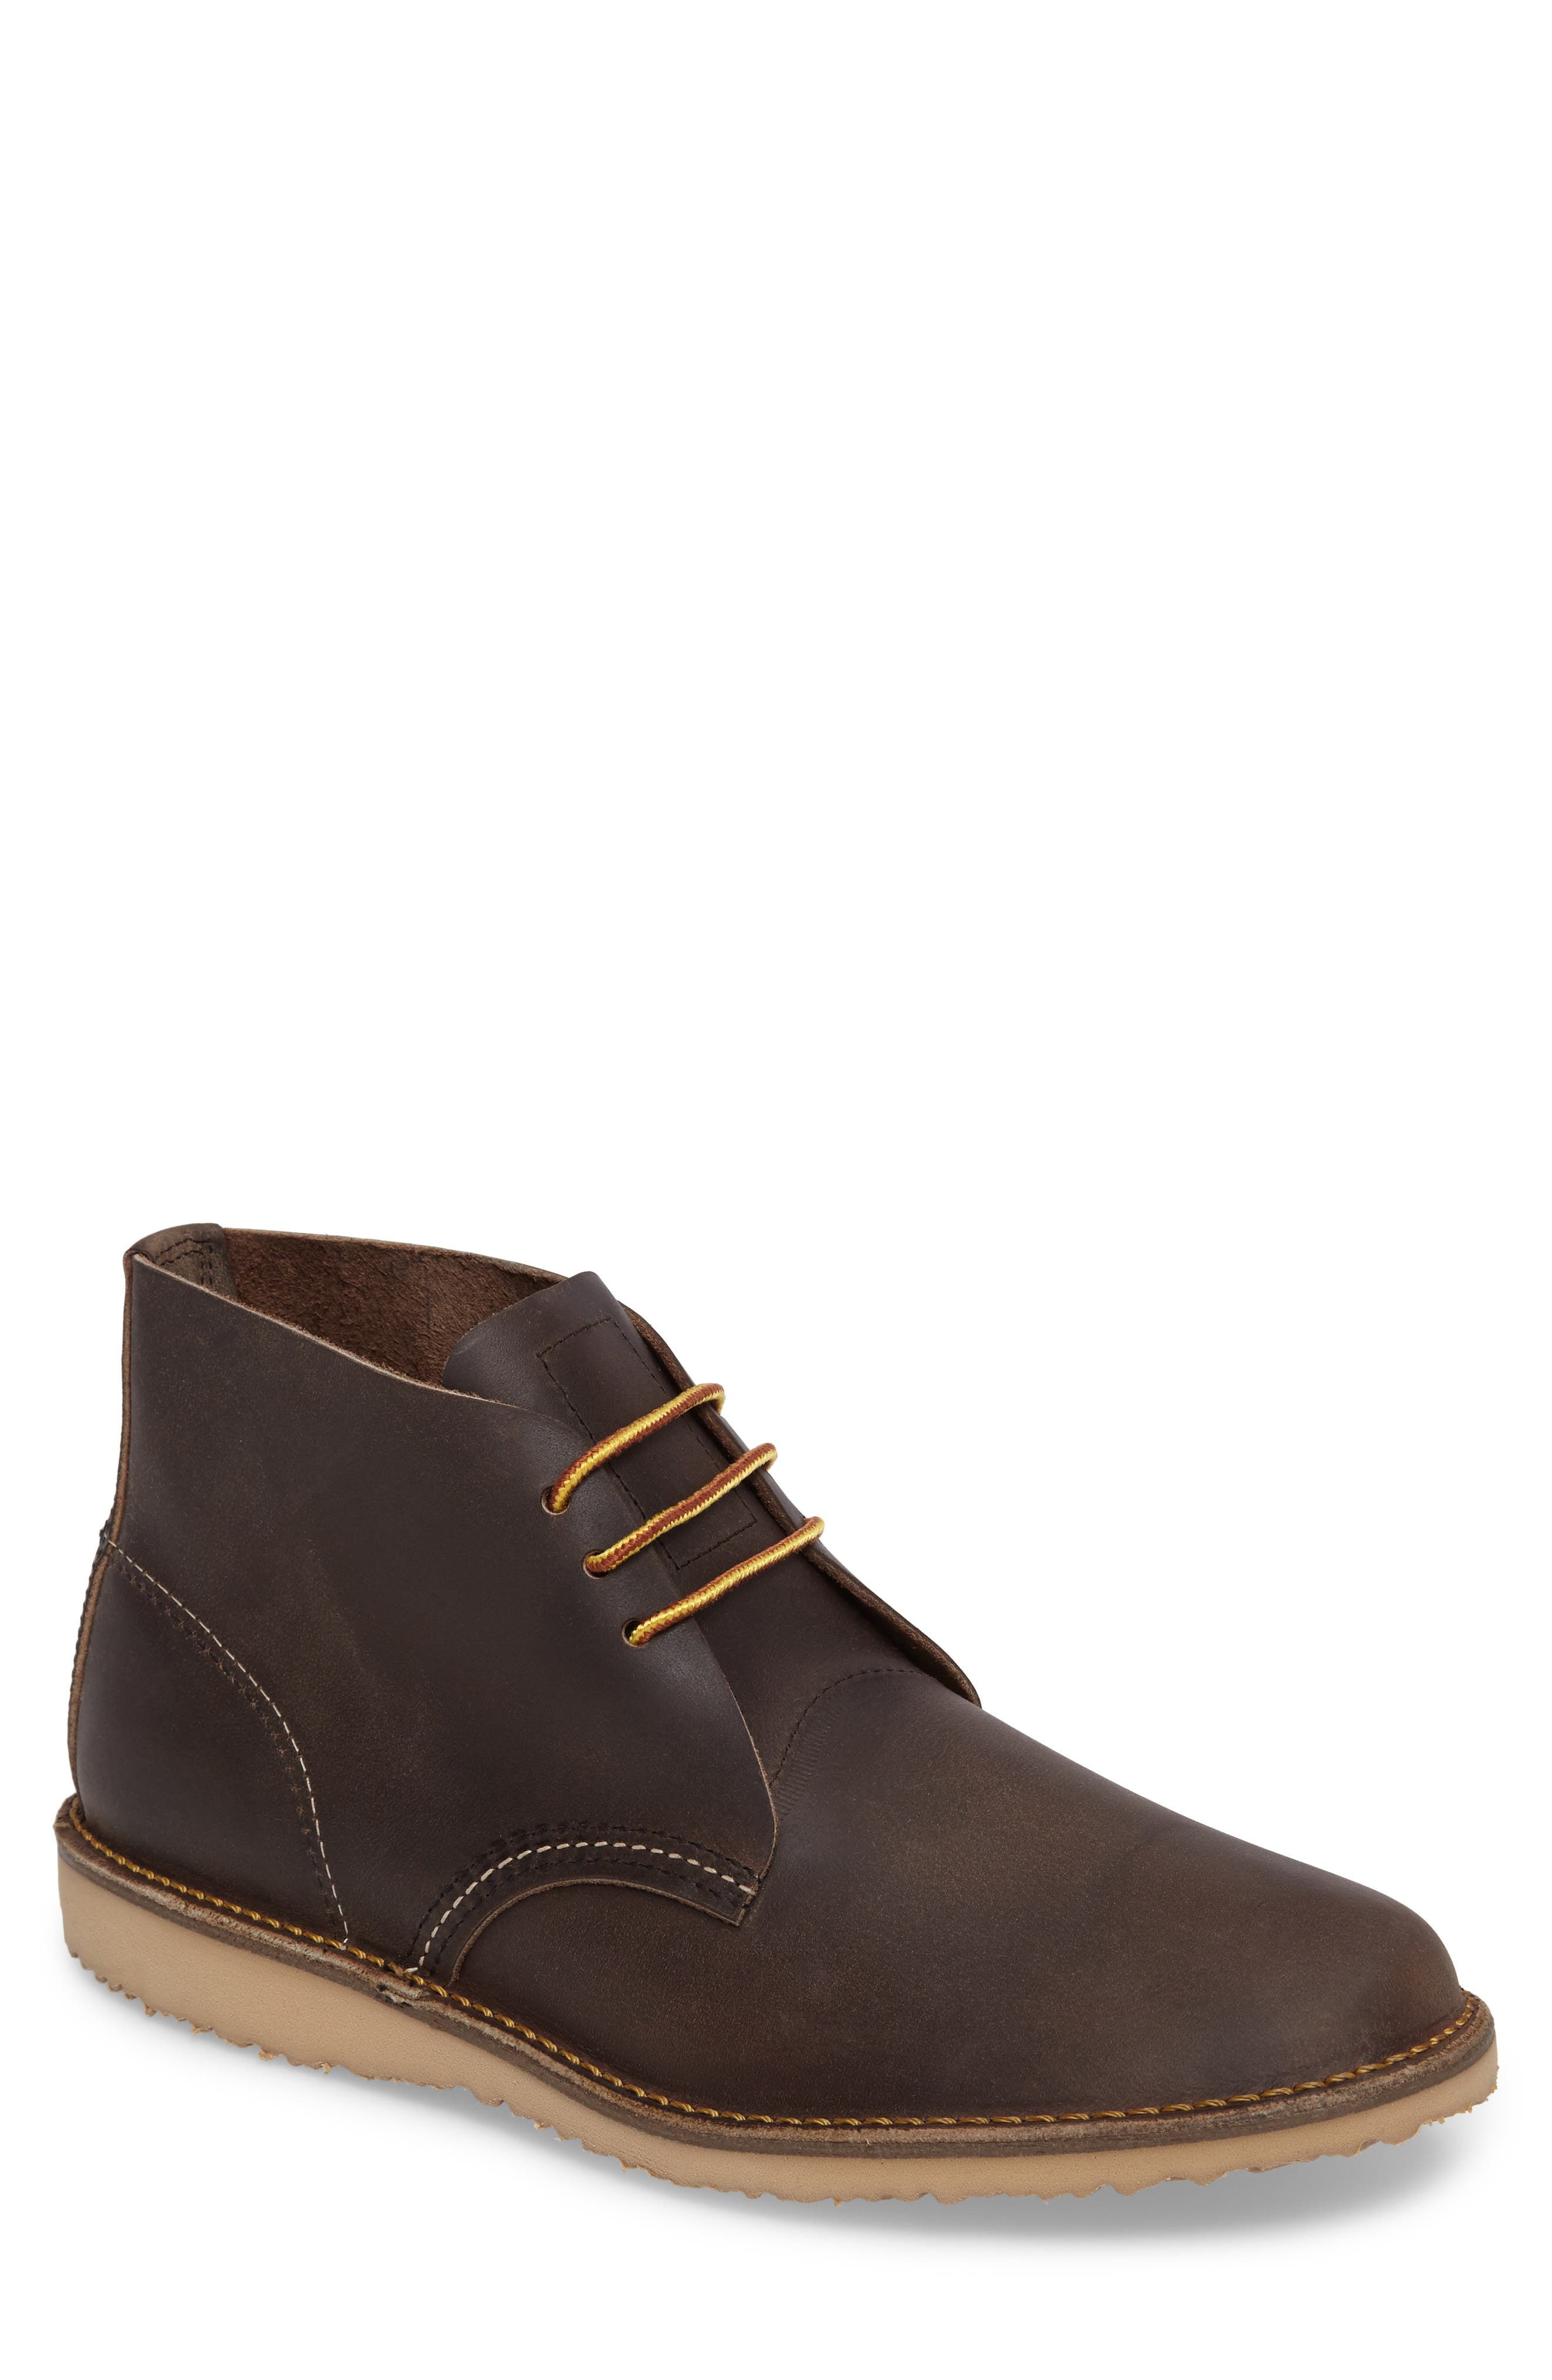 RED WING Chukka Boot, Main, color, 200